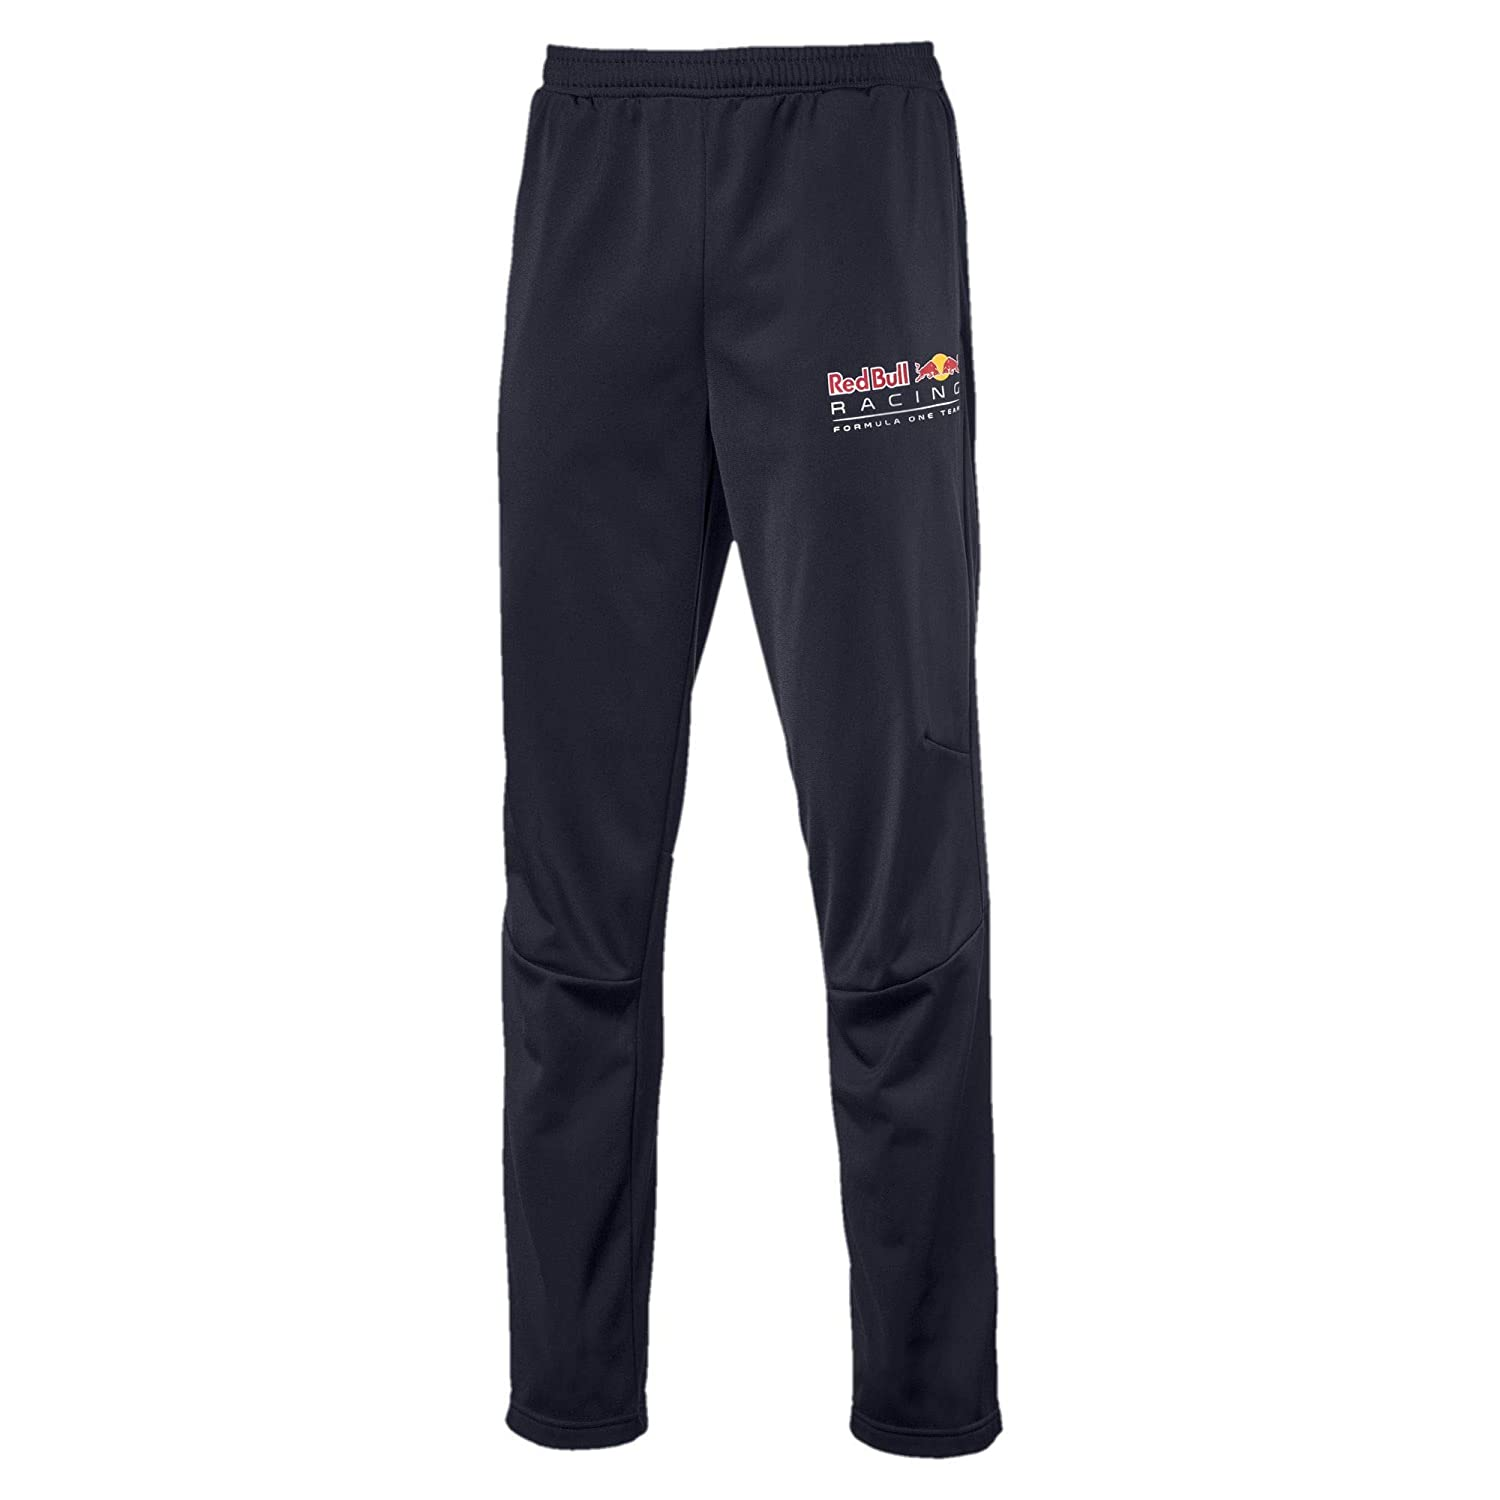 Puma ROT Bull Racing Sweatpants